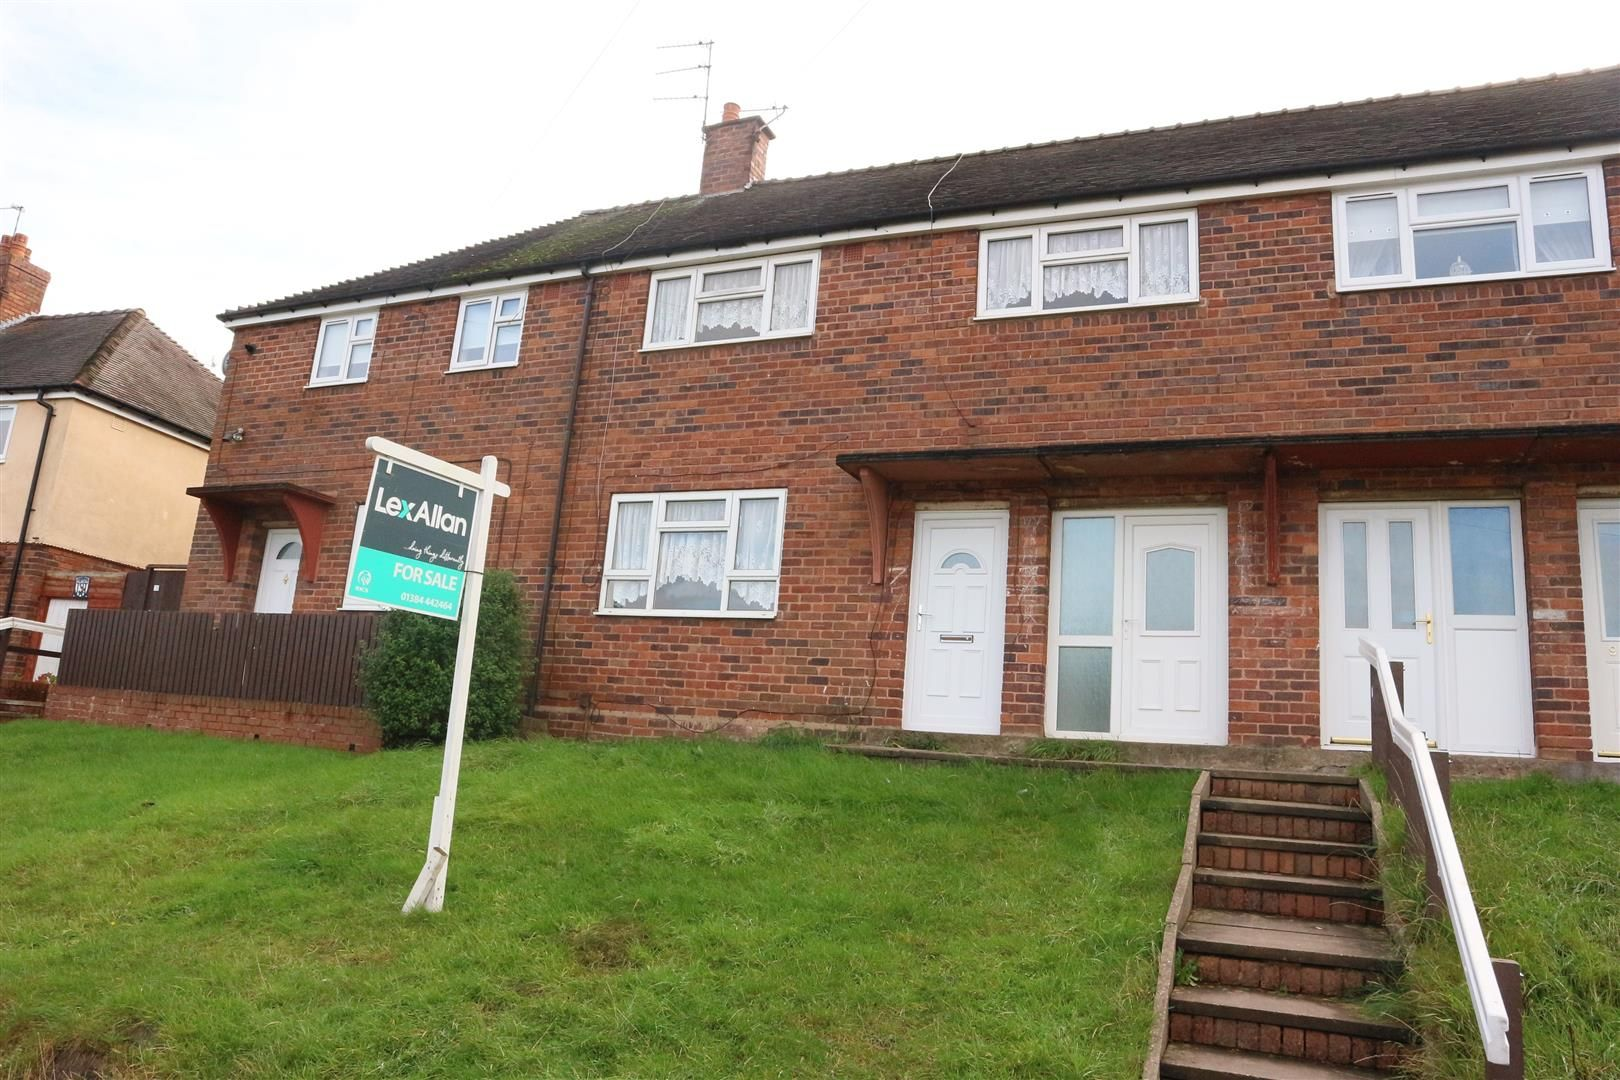 3 bed terraced for sale, DY9